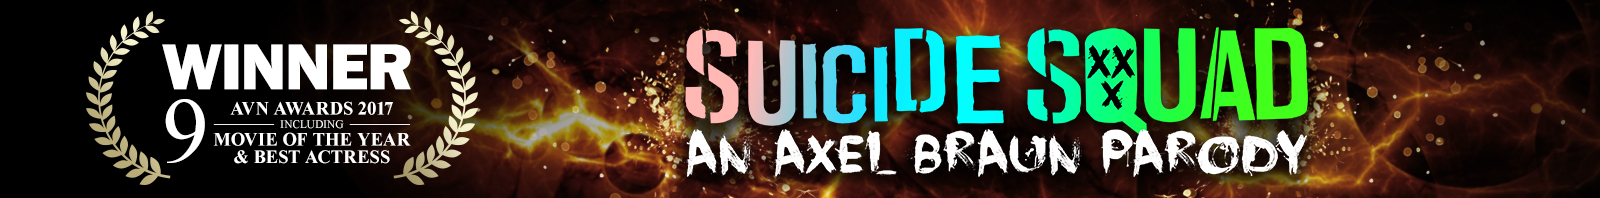 Suicide Squad: An Axel Braun Parody - 9 AVN Awards Banner